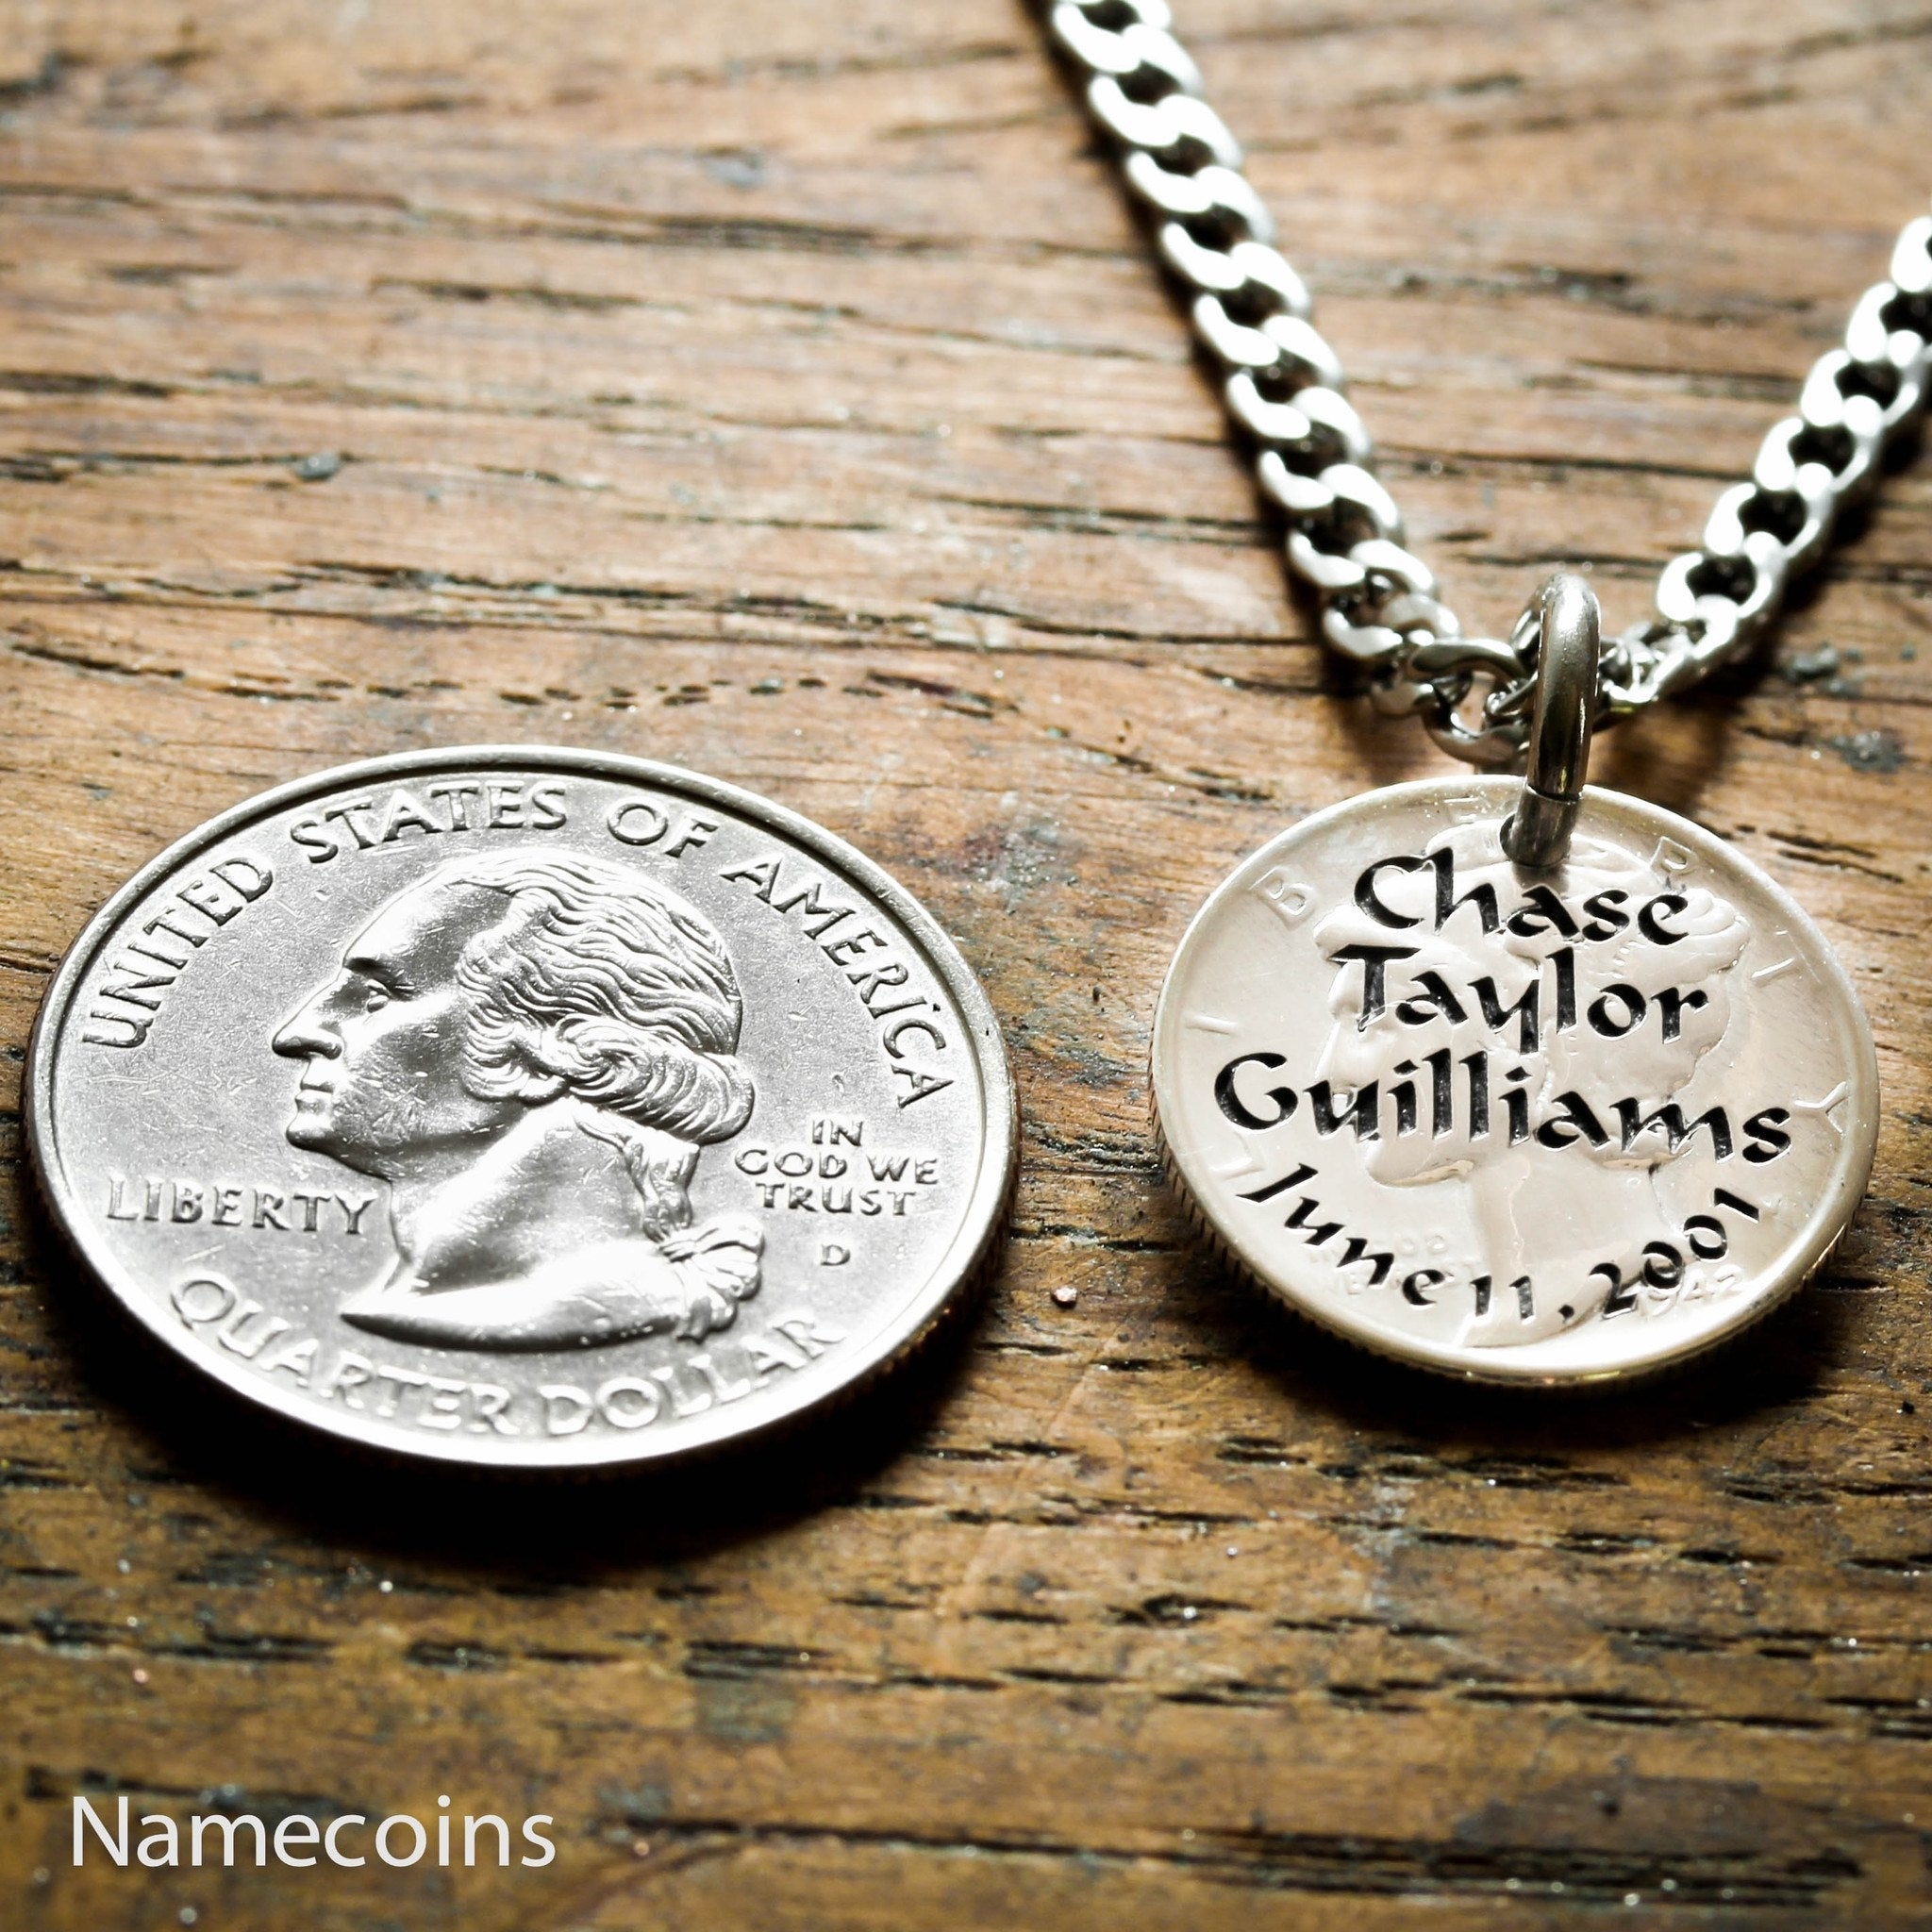 gb engraved name london pendant gold timeless en gifts hires vermeil engrave links yellow necklace of